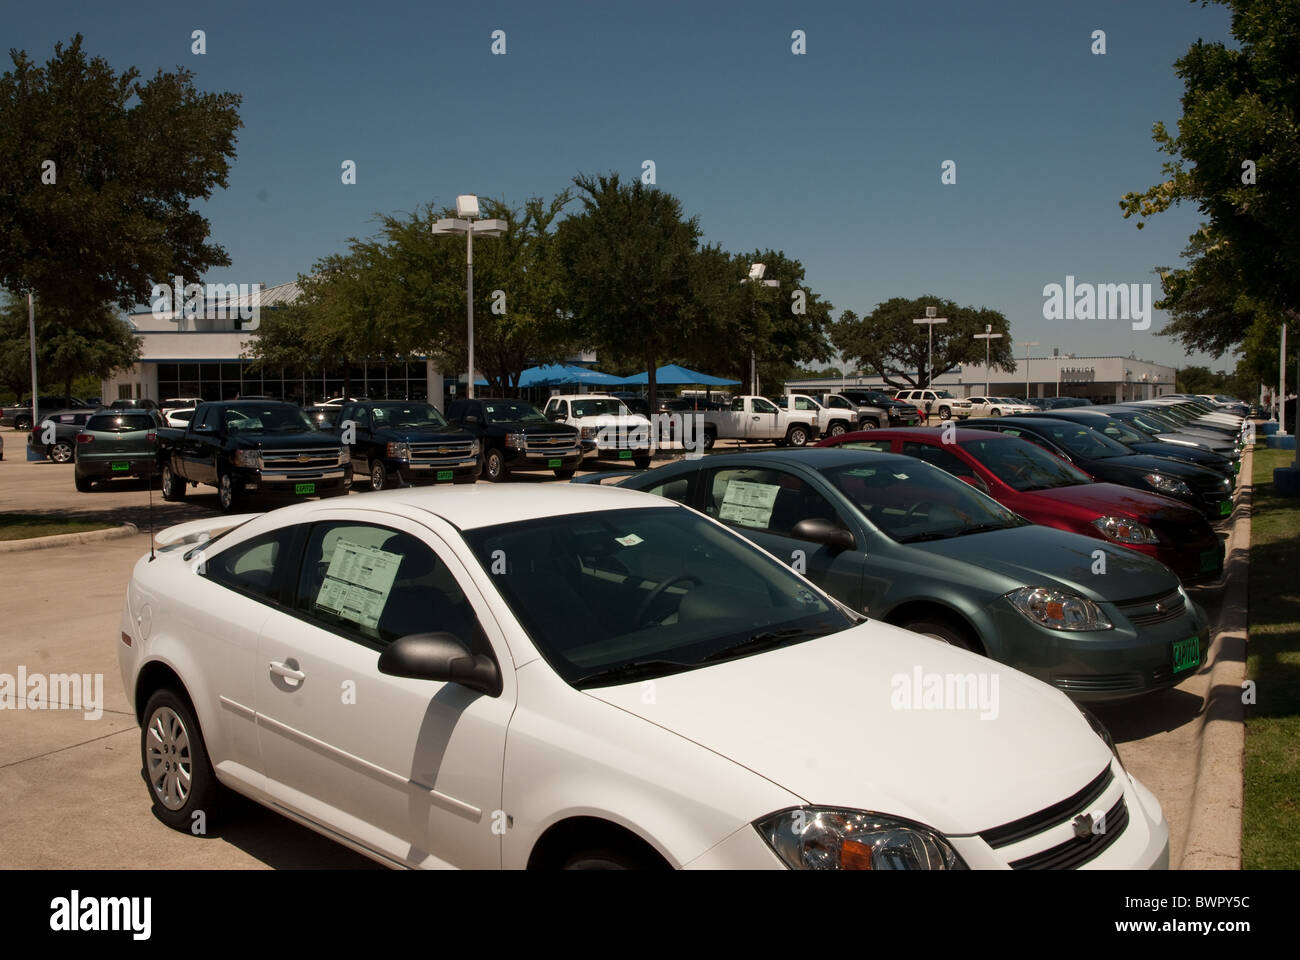 Ford Dealership Austin >> New Cars Parked In A Row At A Ford Dealership In Austin